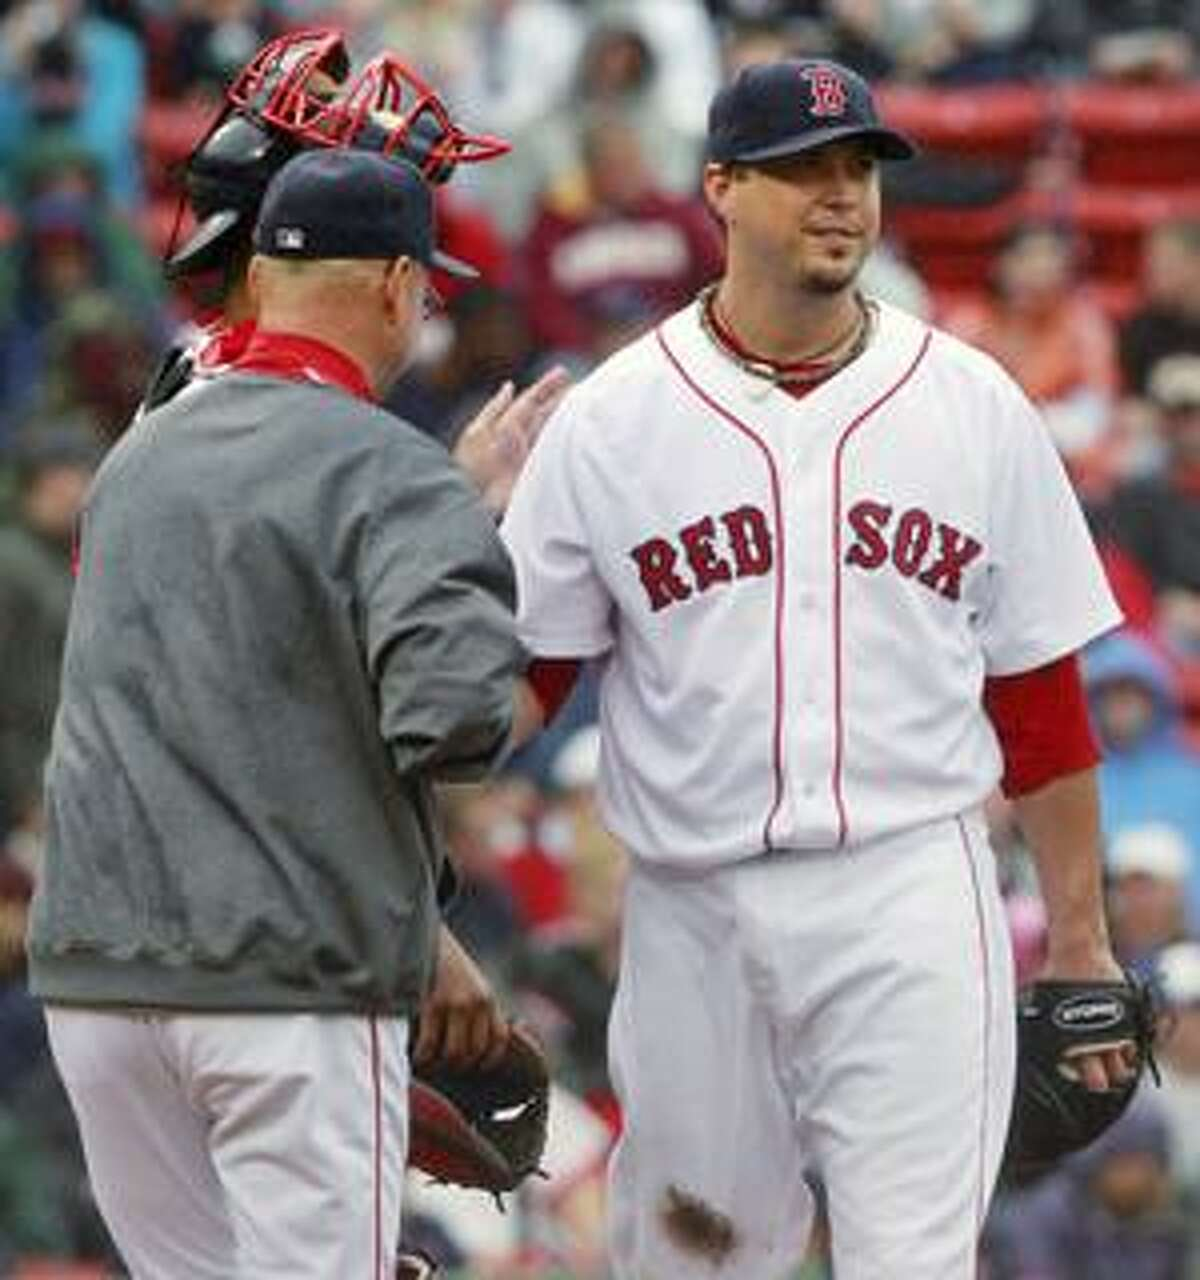 Boston Red Sox starter Josh Beckett, right, gets a pat on the back from manager Terry Francona after being replaced following a two-run home run by Seattle Mariners' Casey Kotchman during the seventh inning of their baseball game in Boston, Wednesday, Aug. 25, 2010. (AP Photo/Charles Krupa)